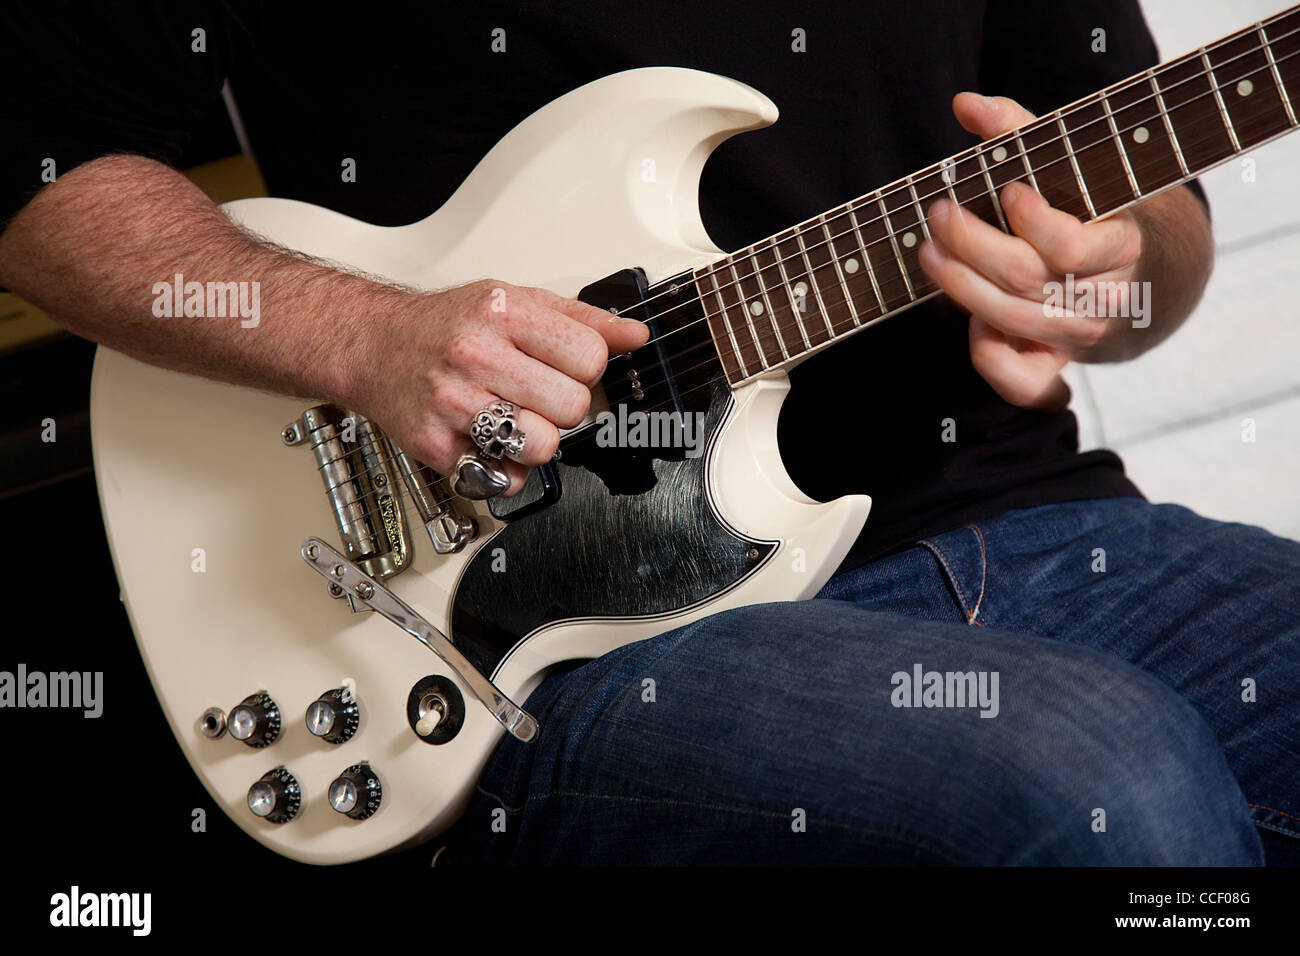 Close-up of mid adult man's torso playing guitar - Stock Image